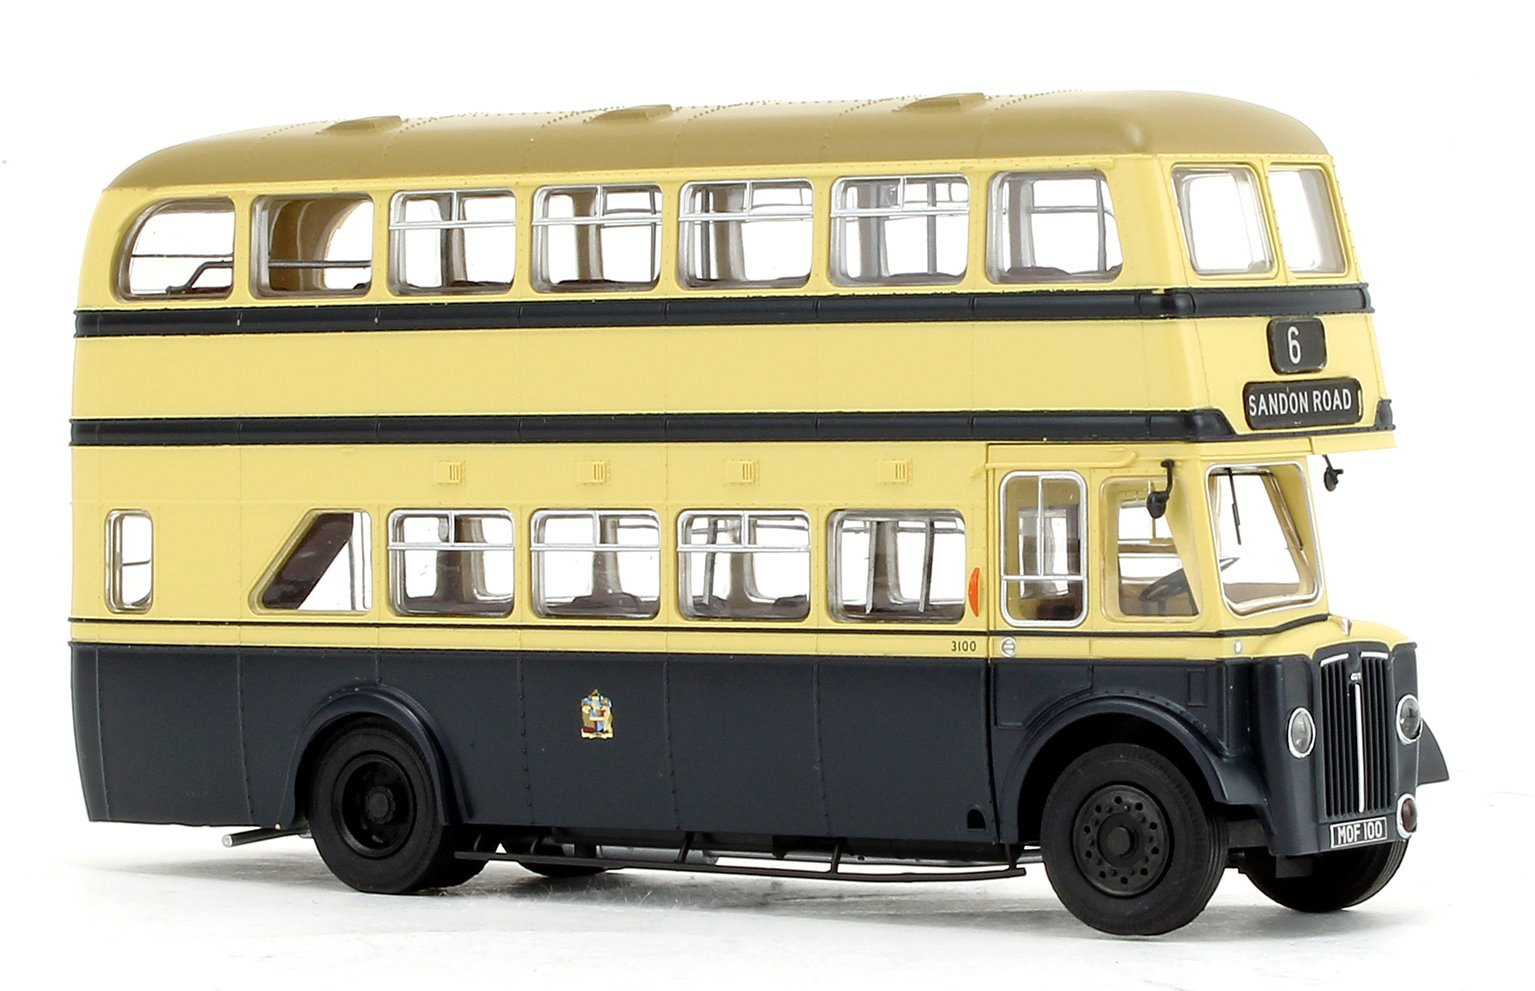 Deluxe Edition Birmingham City Transport (BCT) Blue/Cream with Khaki Roof Guy Arab IV with Metro-Cammell body - Fleet No.3100 - 6 Sandon Road - Licence No. MOF 100 (Black Numbers)